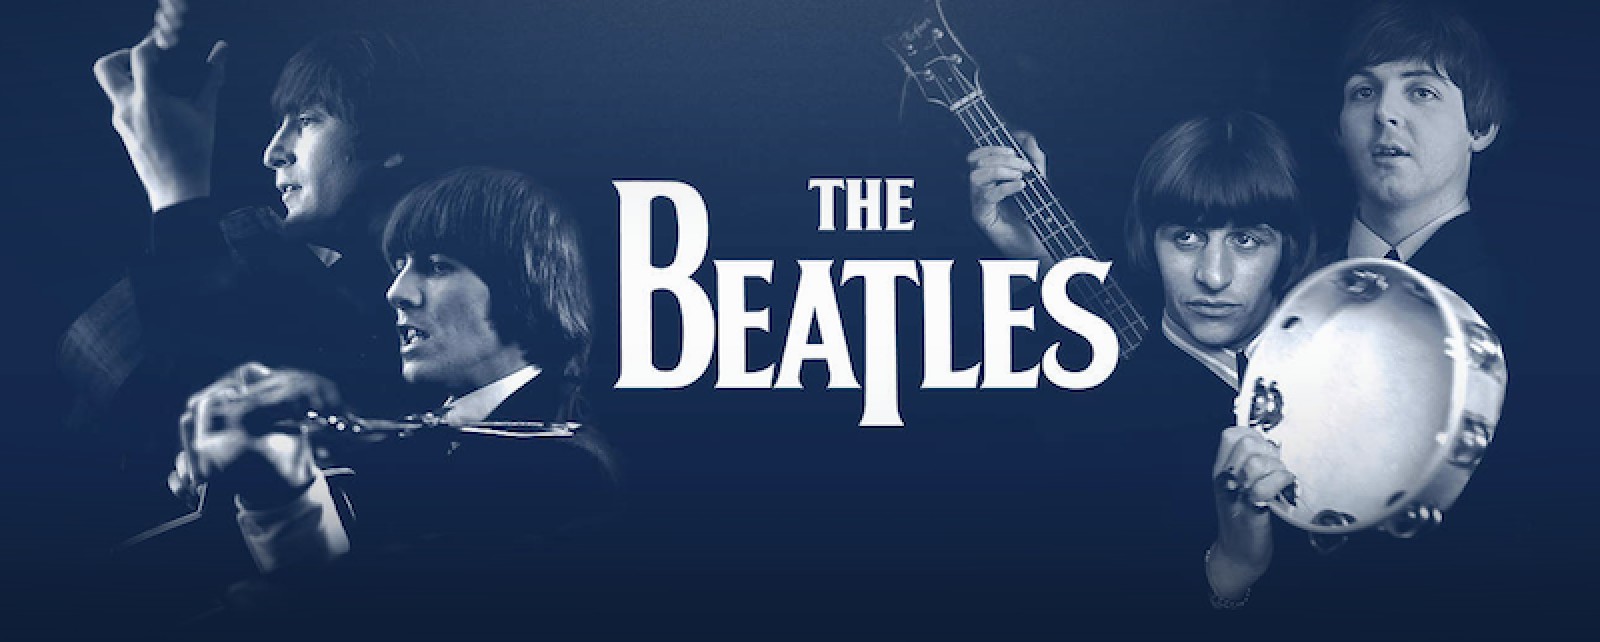 The_Beatles_Streaming_Apple_Music_noticiasapple.es